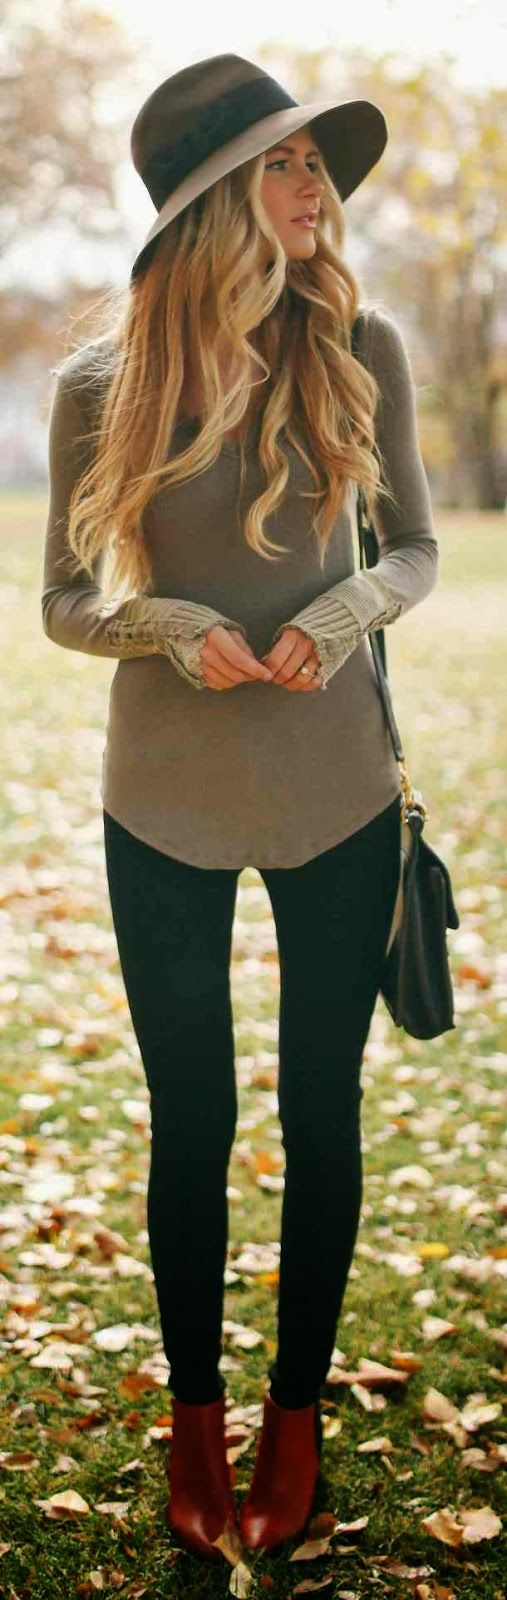 Fall street fashion style in brown and black. Love this whole outfit.